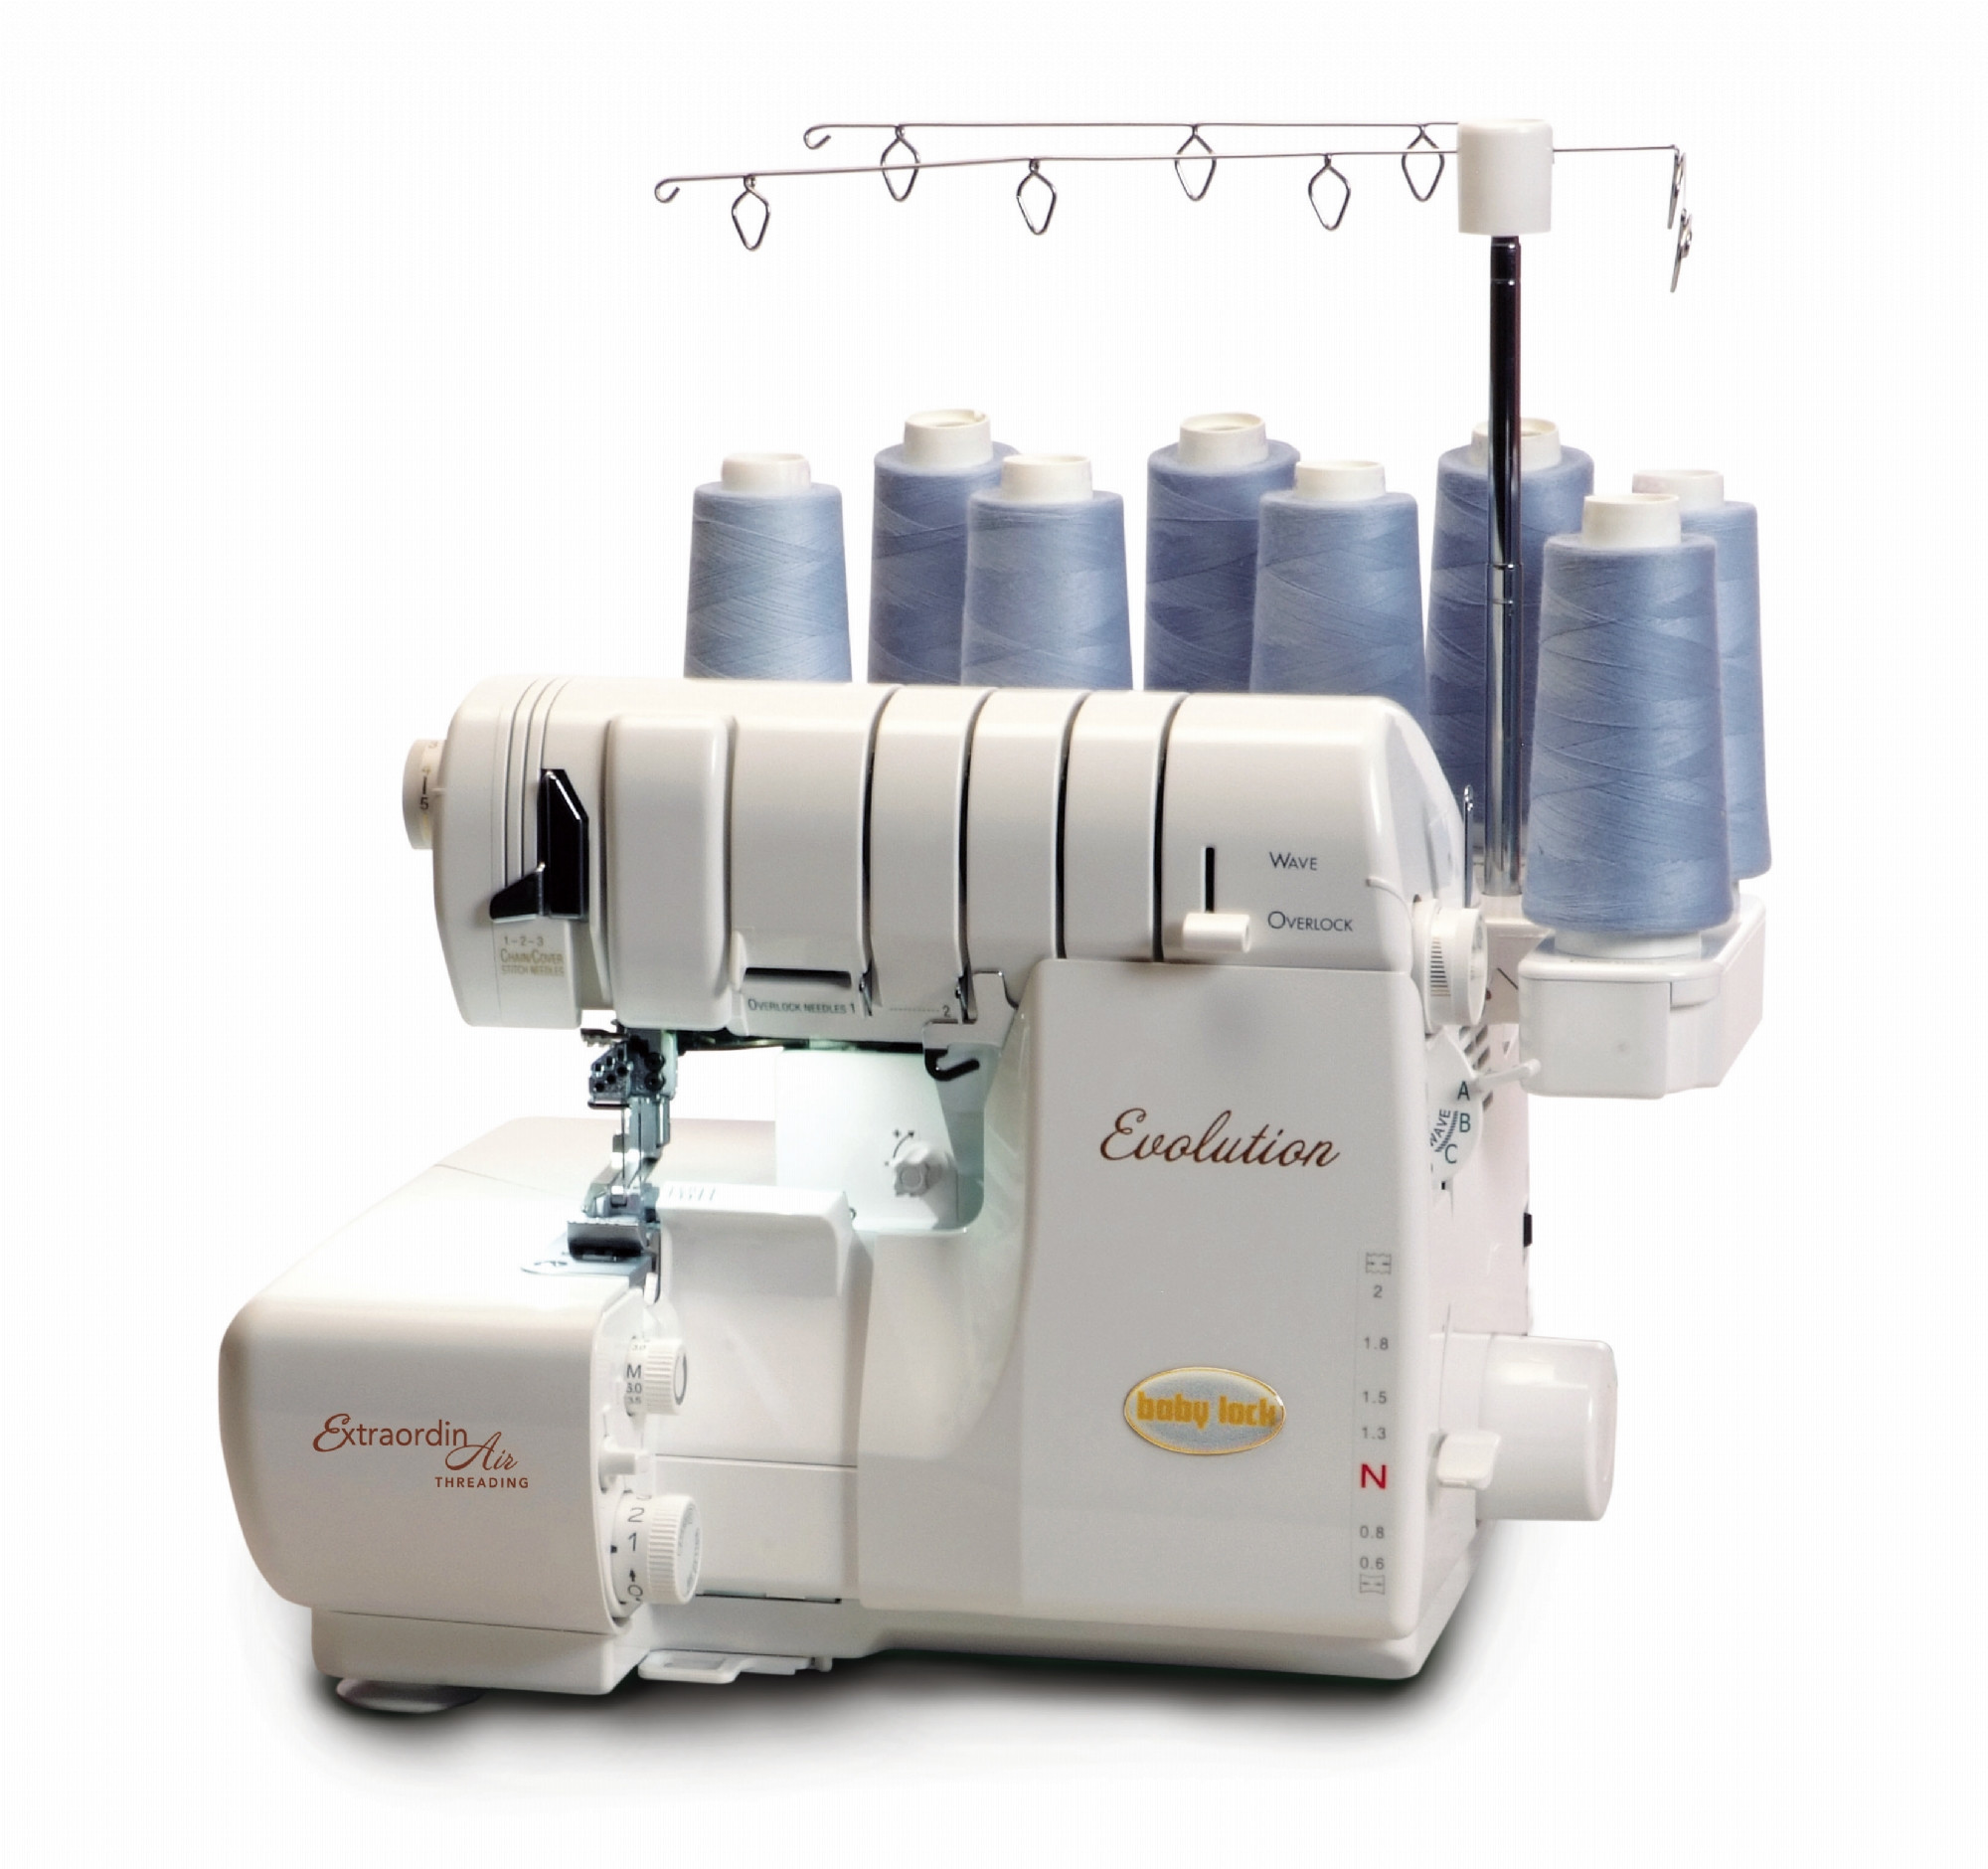 The EVOLUTION has air threading of the loopers as well as overlock and cover stitch capabilities. - We have ONE new-in-box Evolution and our floor model at huge discounts off MSRP.